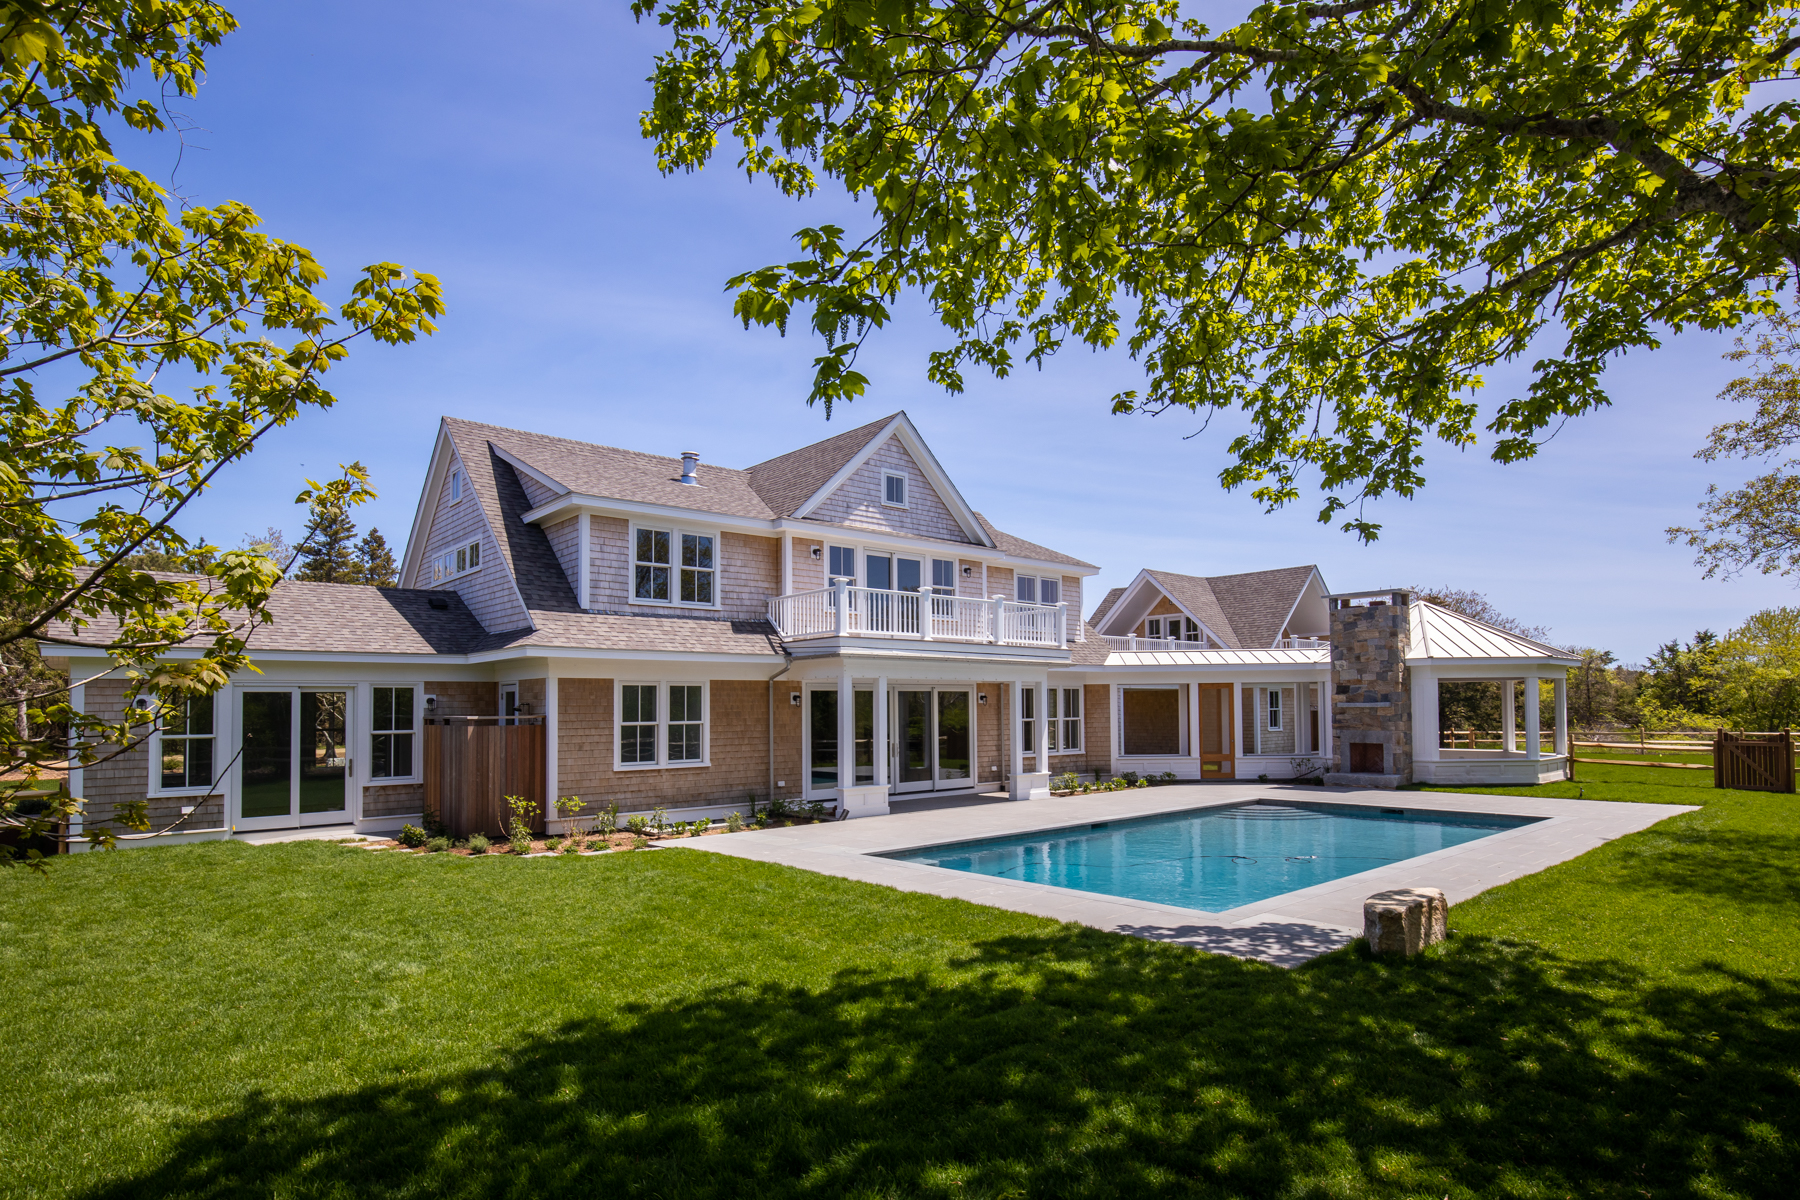 Single Family Homes for Active at New Construction in Katama with Pool 20 West Street Edgartown, Massachusetts 02539 United States